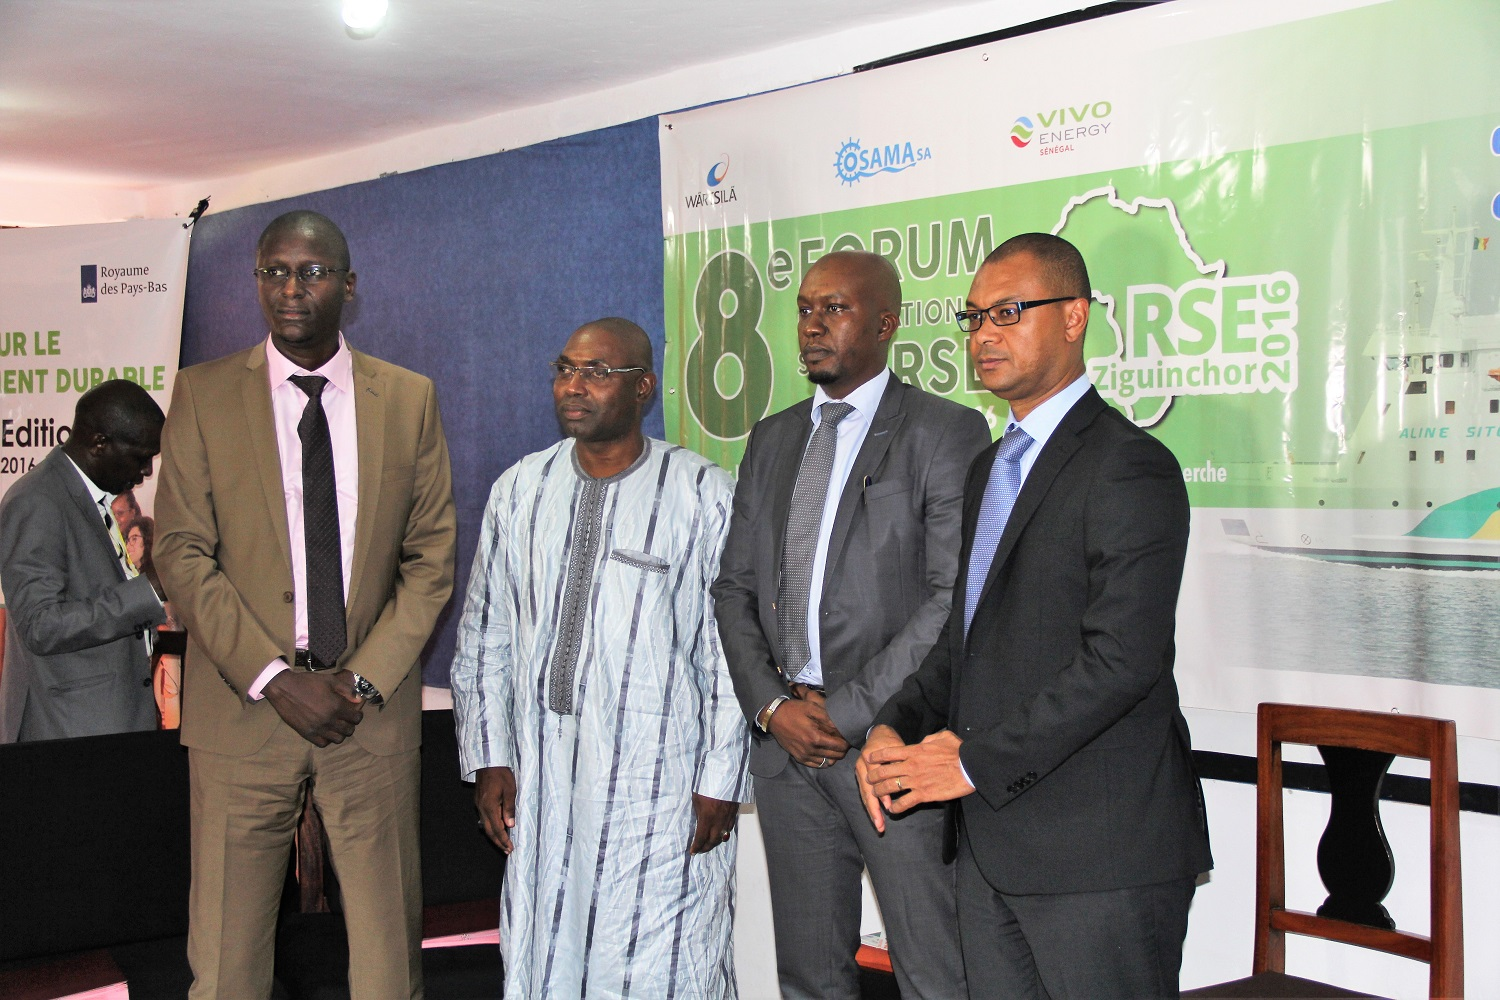 Forum RSE Senegal 2016 : Vue d'un Panel de discussion